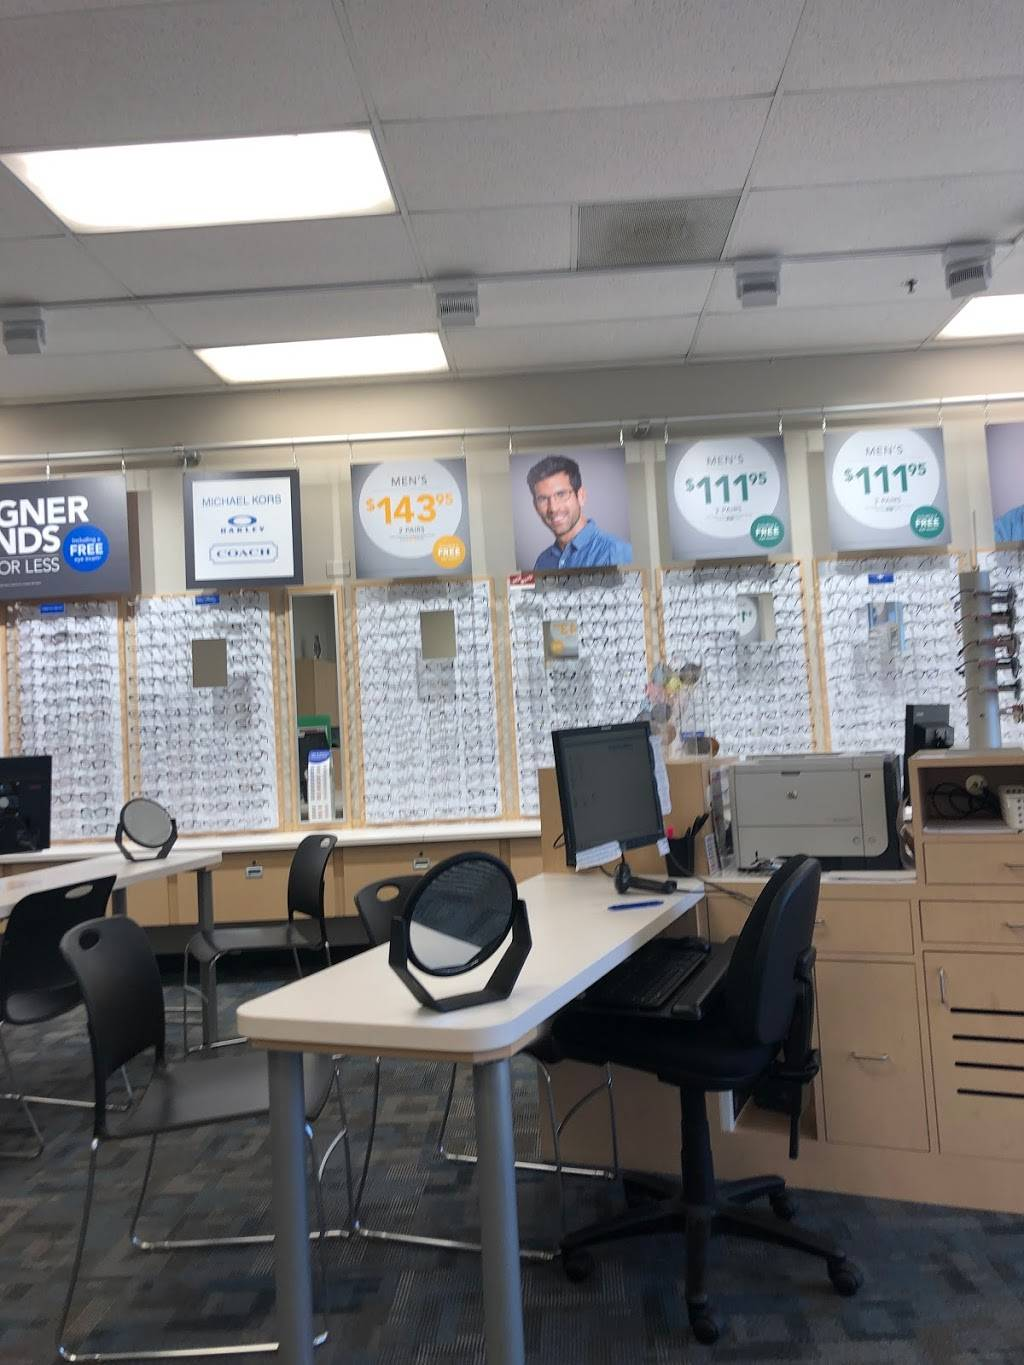 Americas Best Contacts & Eyeglasses - health  | Photo 2 of 6 | Address: 7005 Security Blvd, Baltimore, MD 21244, USA | Phone: (410) 944-2222